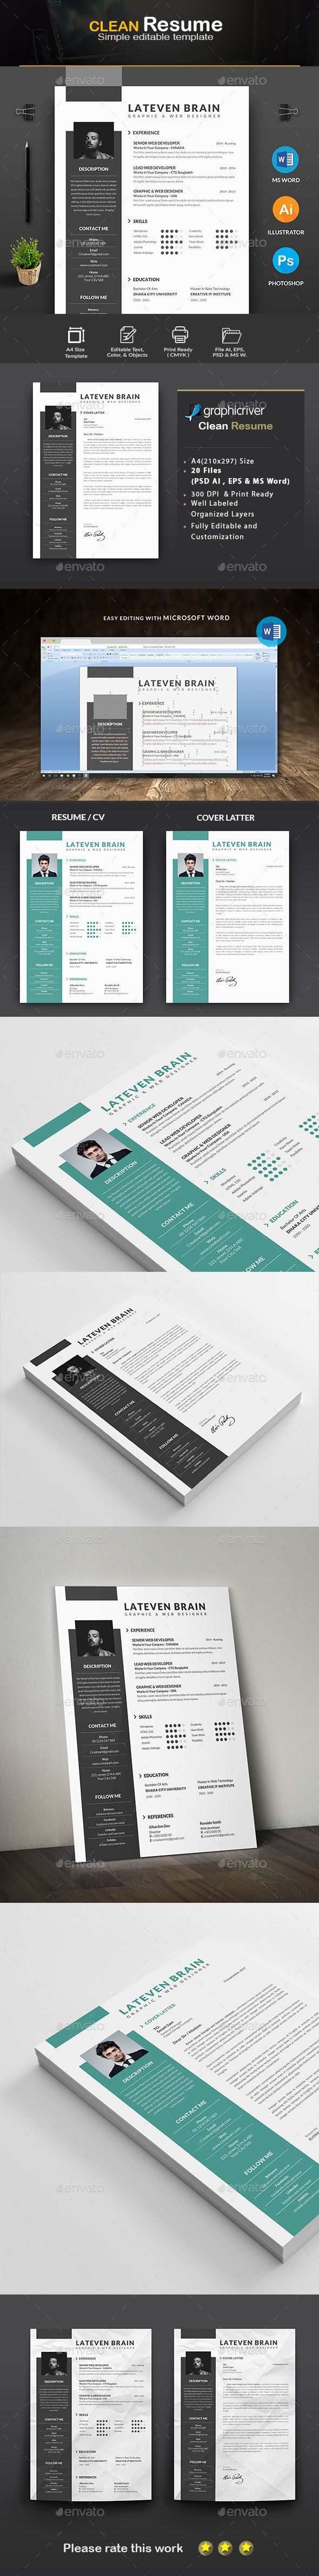 Resume Template PSD, Vector EPS, AI, DOC & DOCX | curriculum models ...